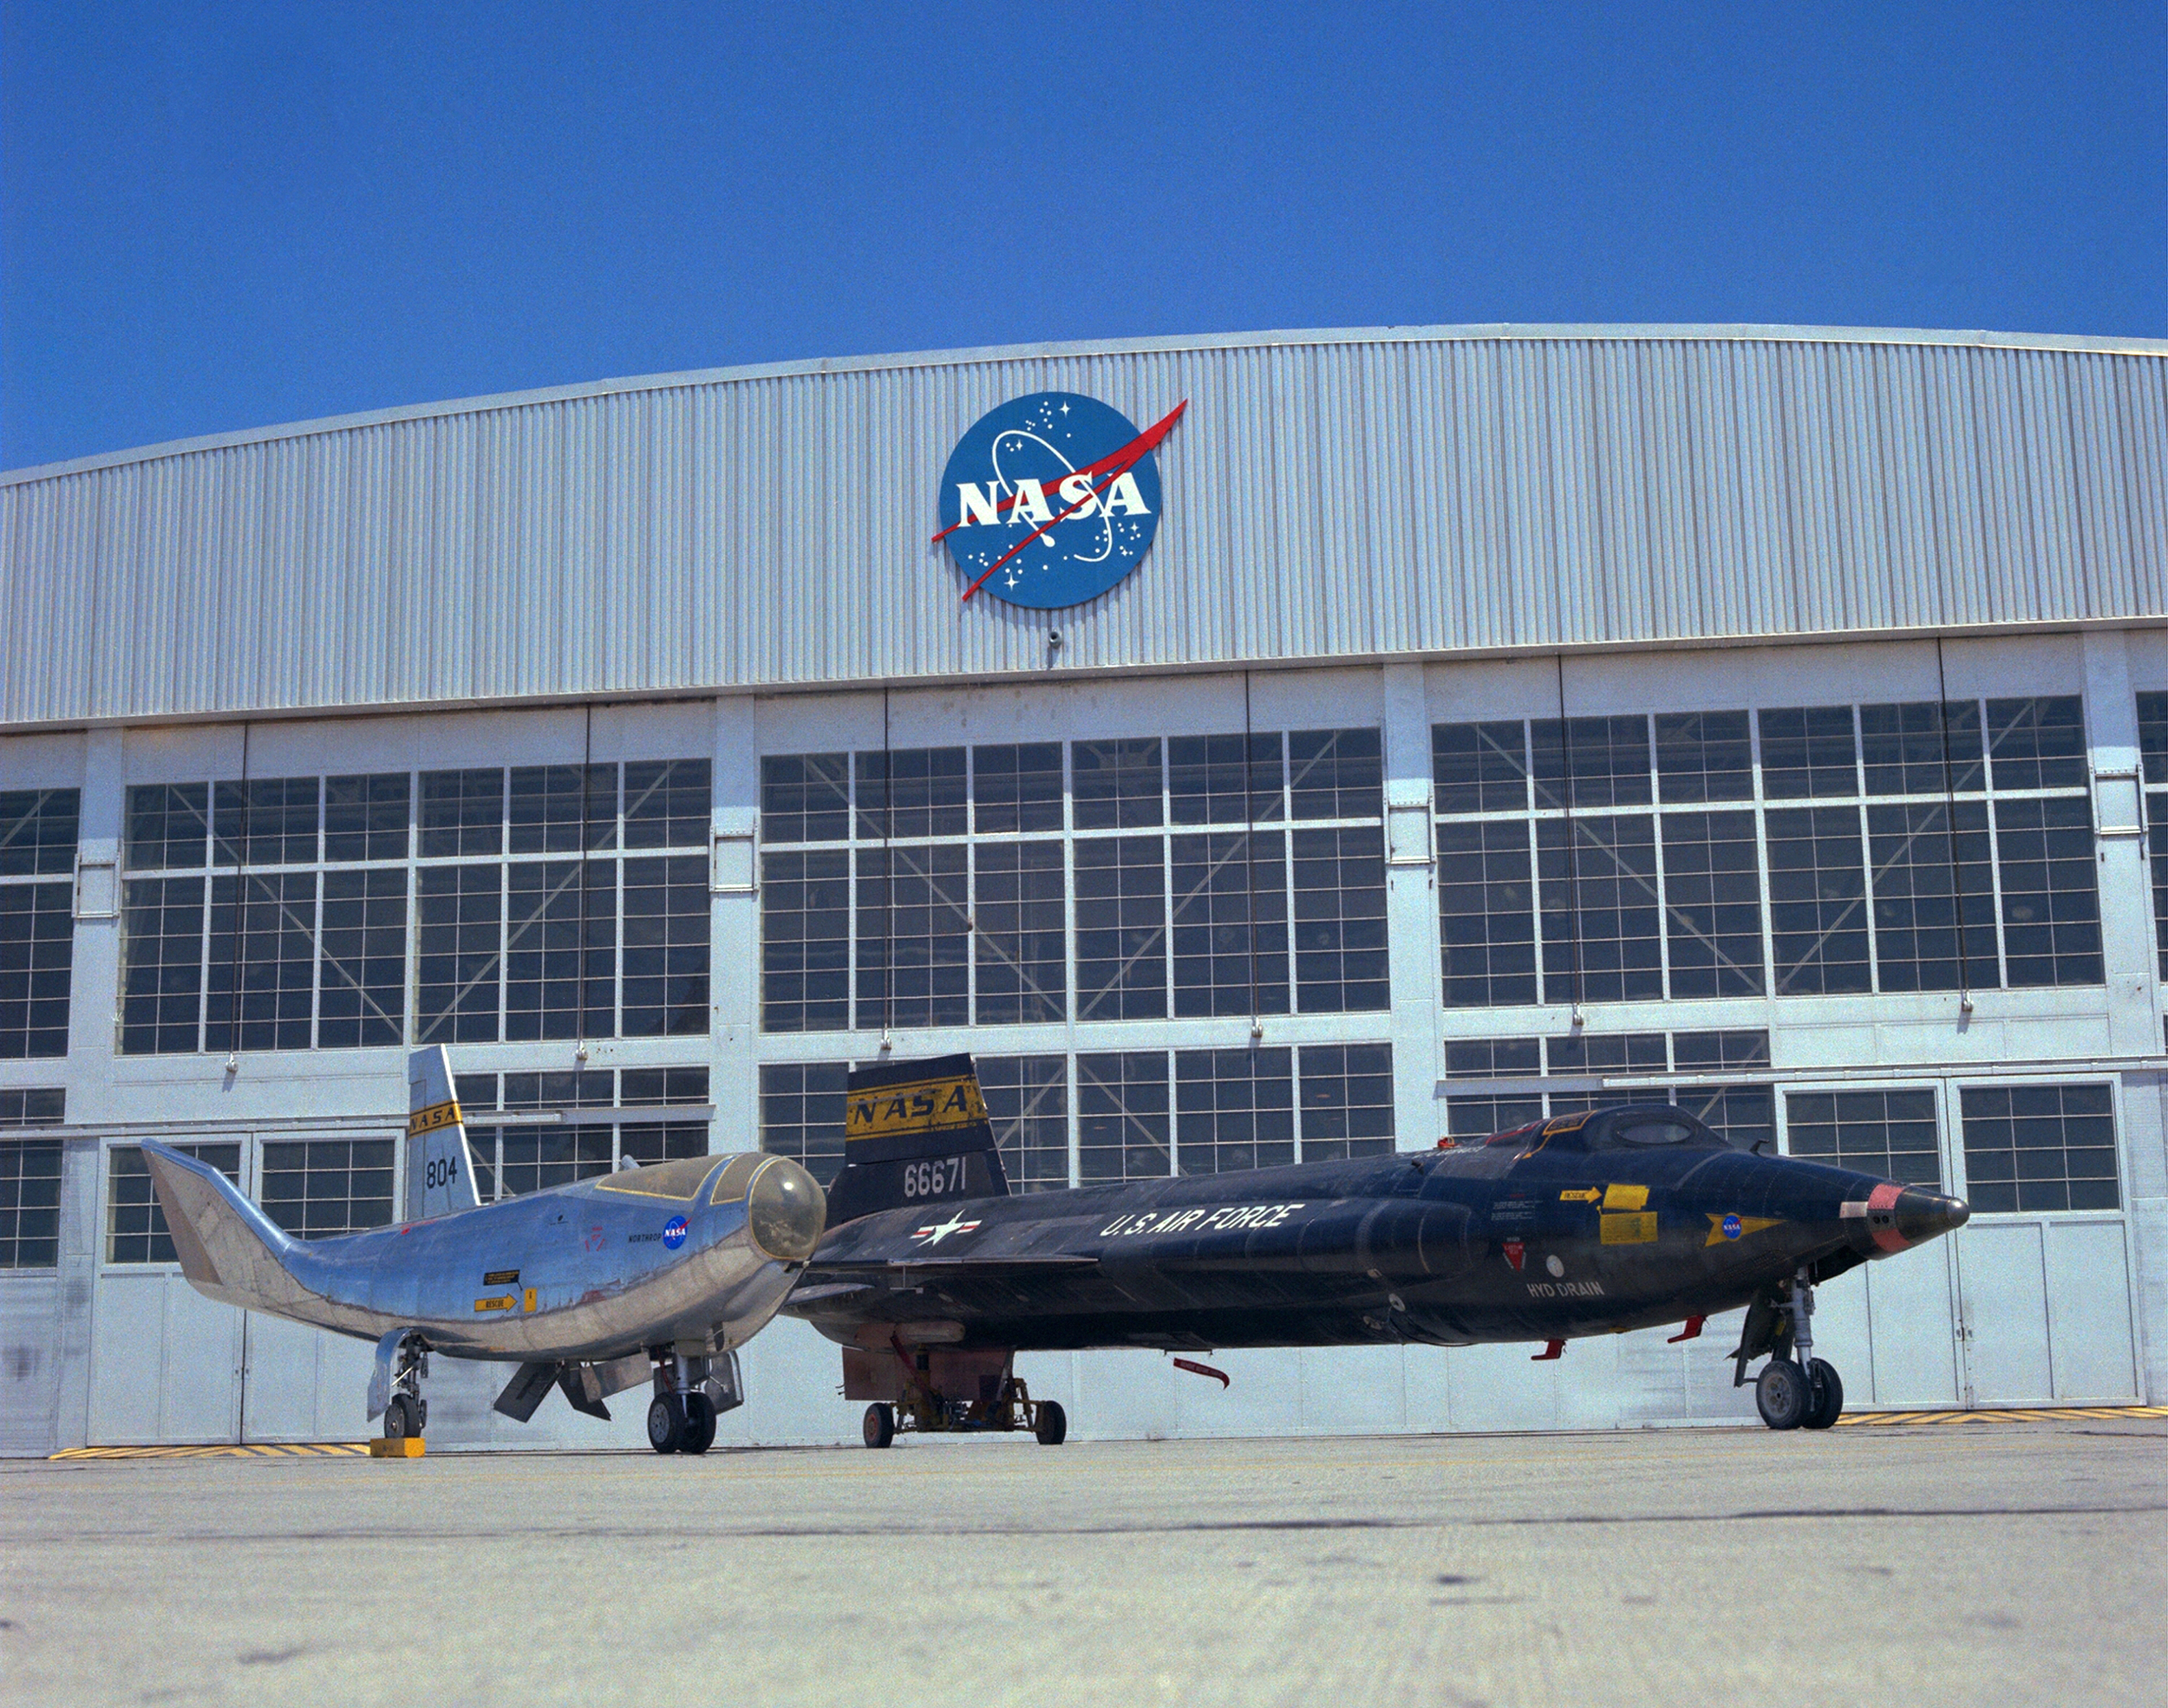 X-15 and HL-10 parked on NASA ramp.